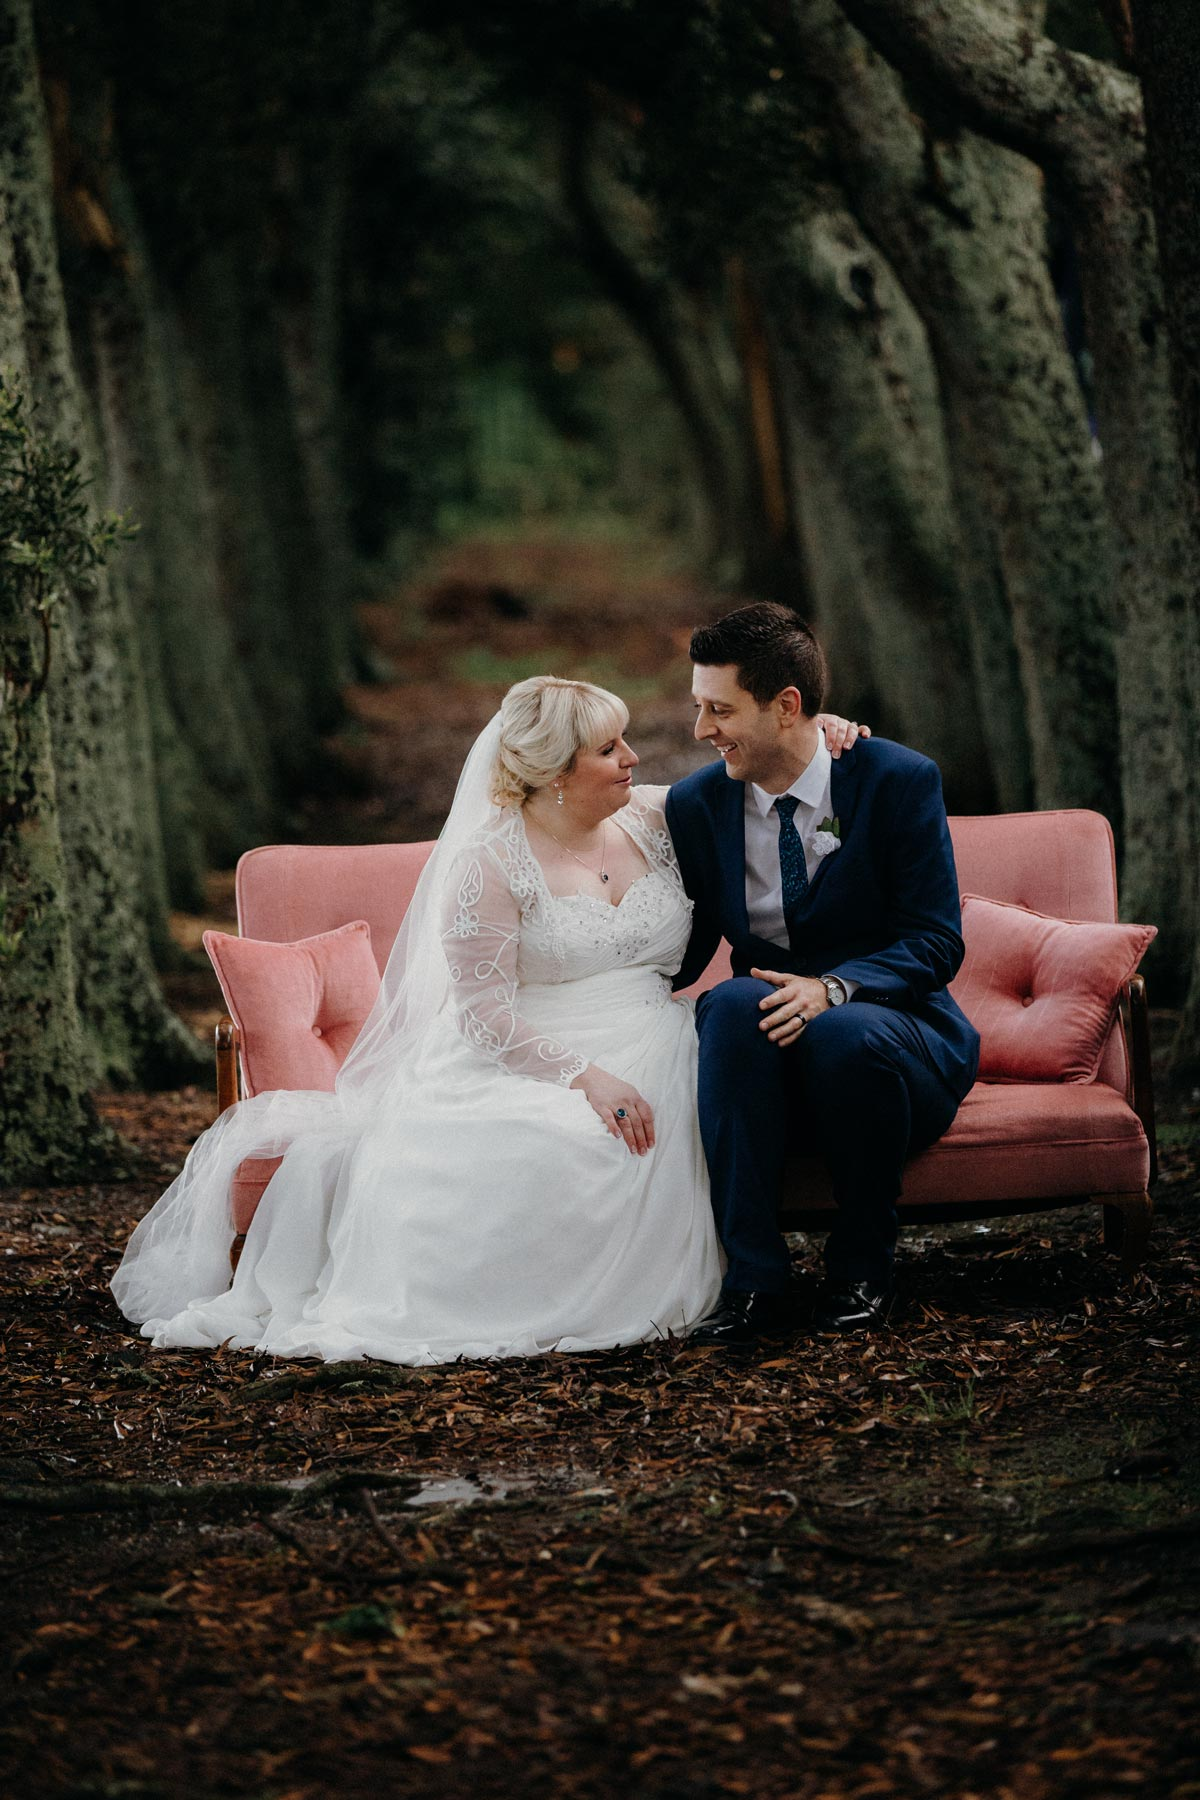 Markovina wedding photo ideas trees Vineyard Estate sarah weber photography